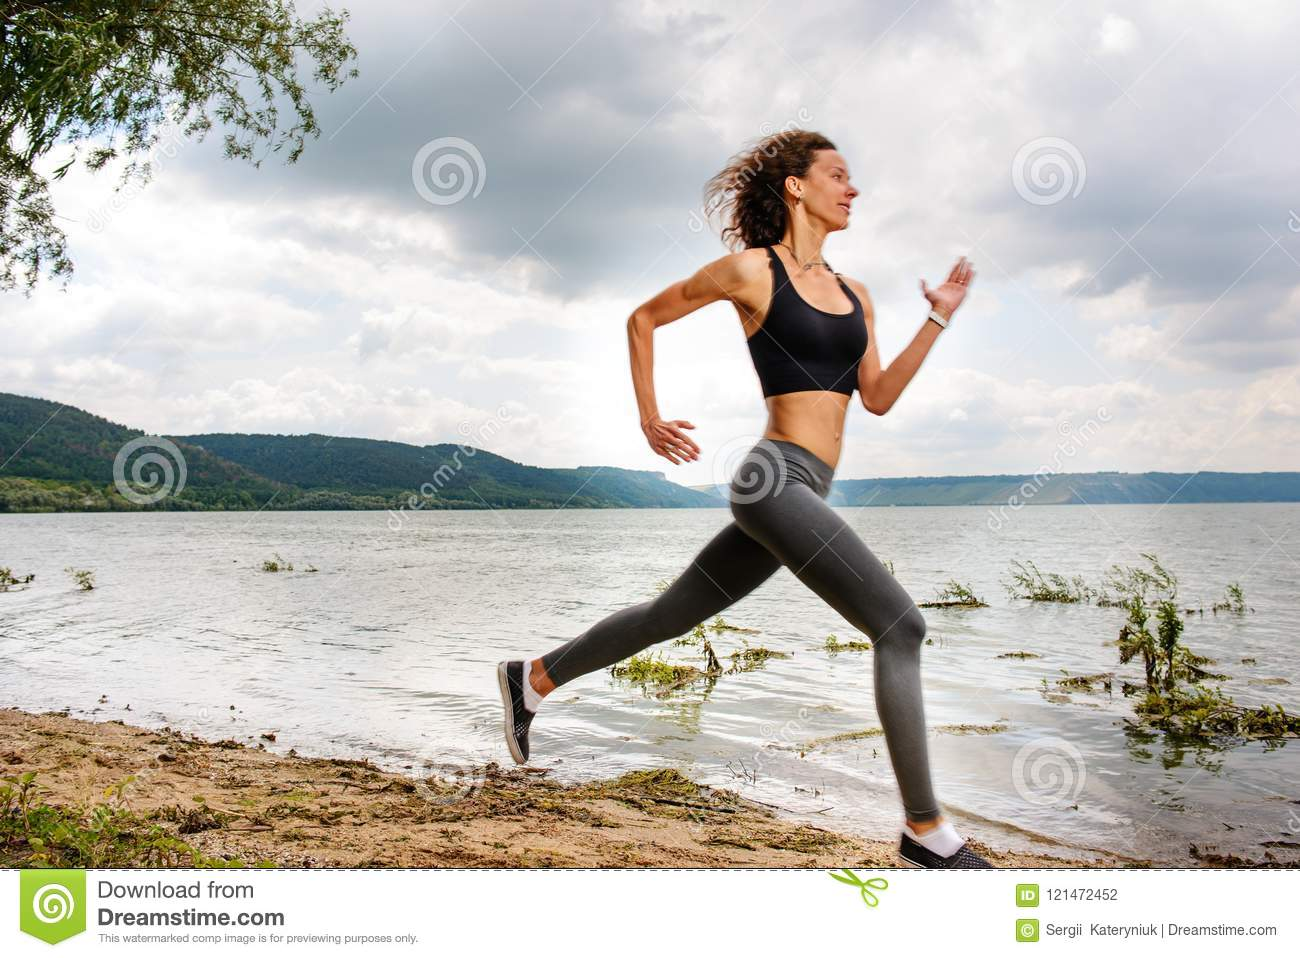 A beautiful sporty woman runing on the shore of a lake in sports